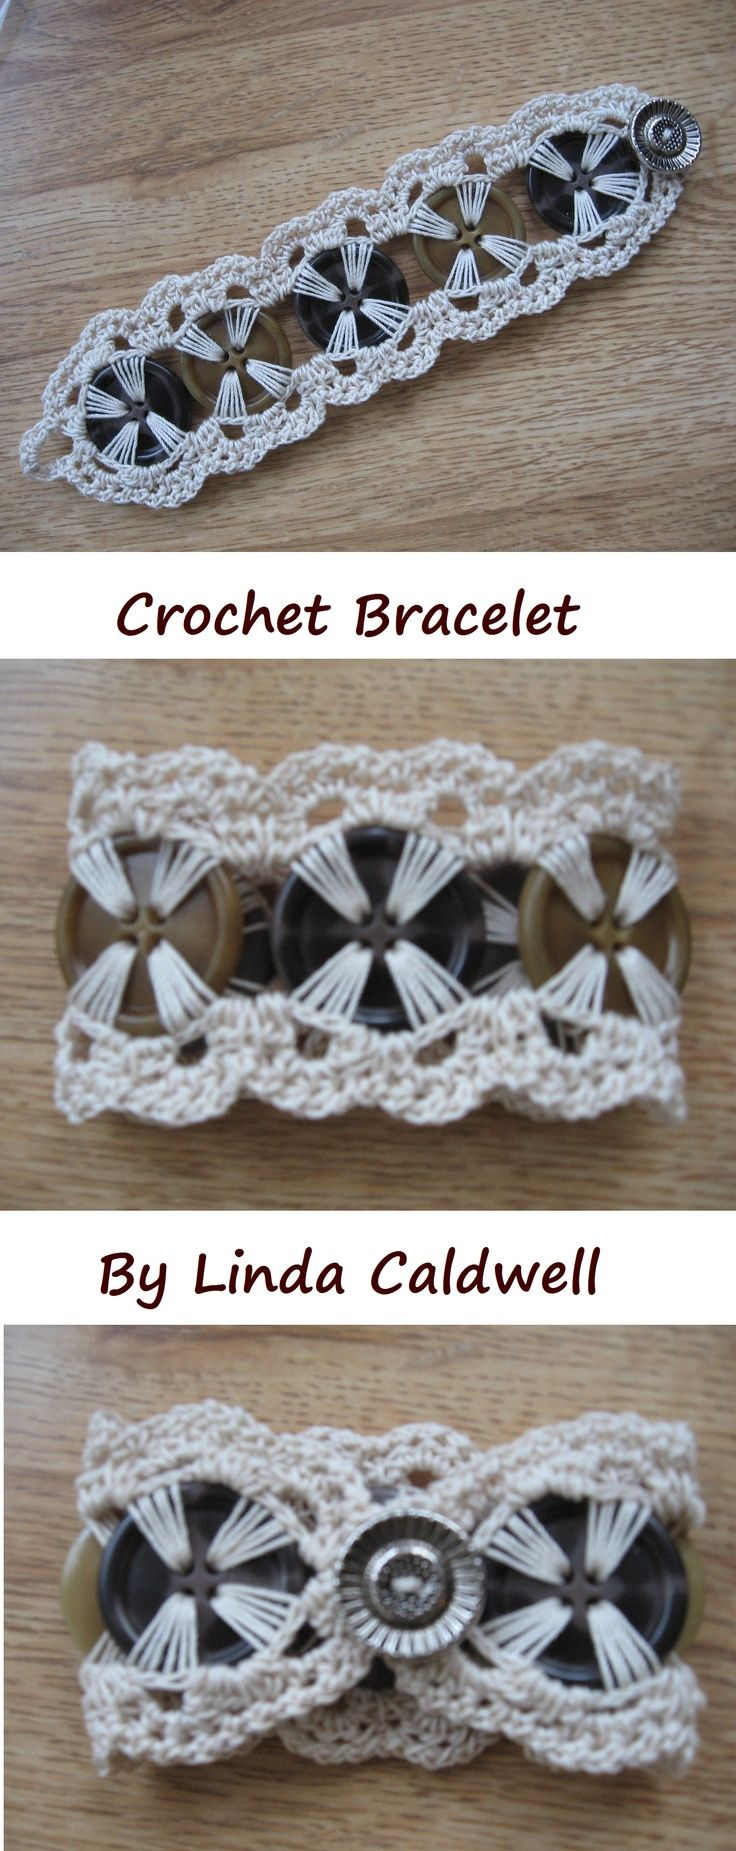 Linda Caldwell Crochet Button Bracelet - Google Search